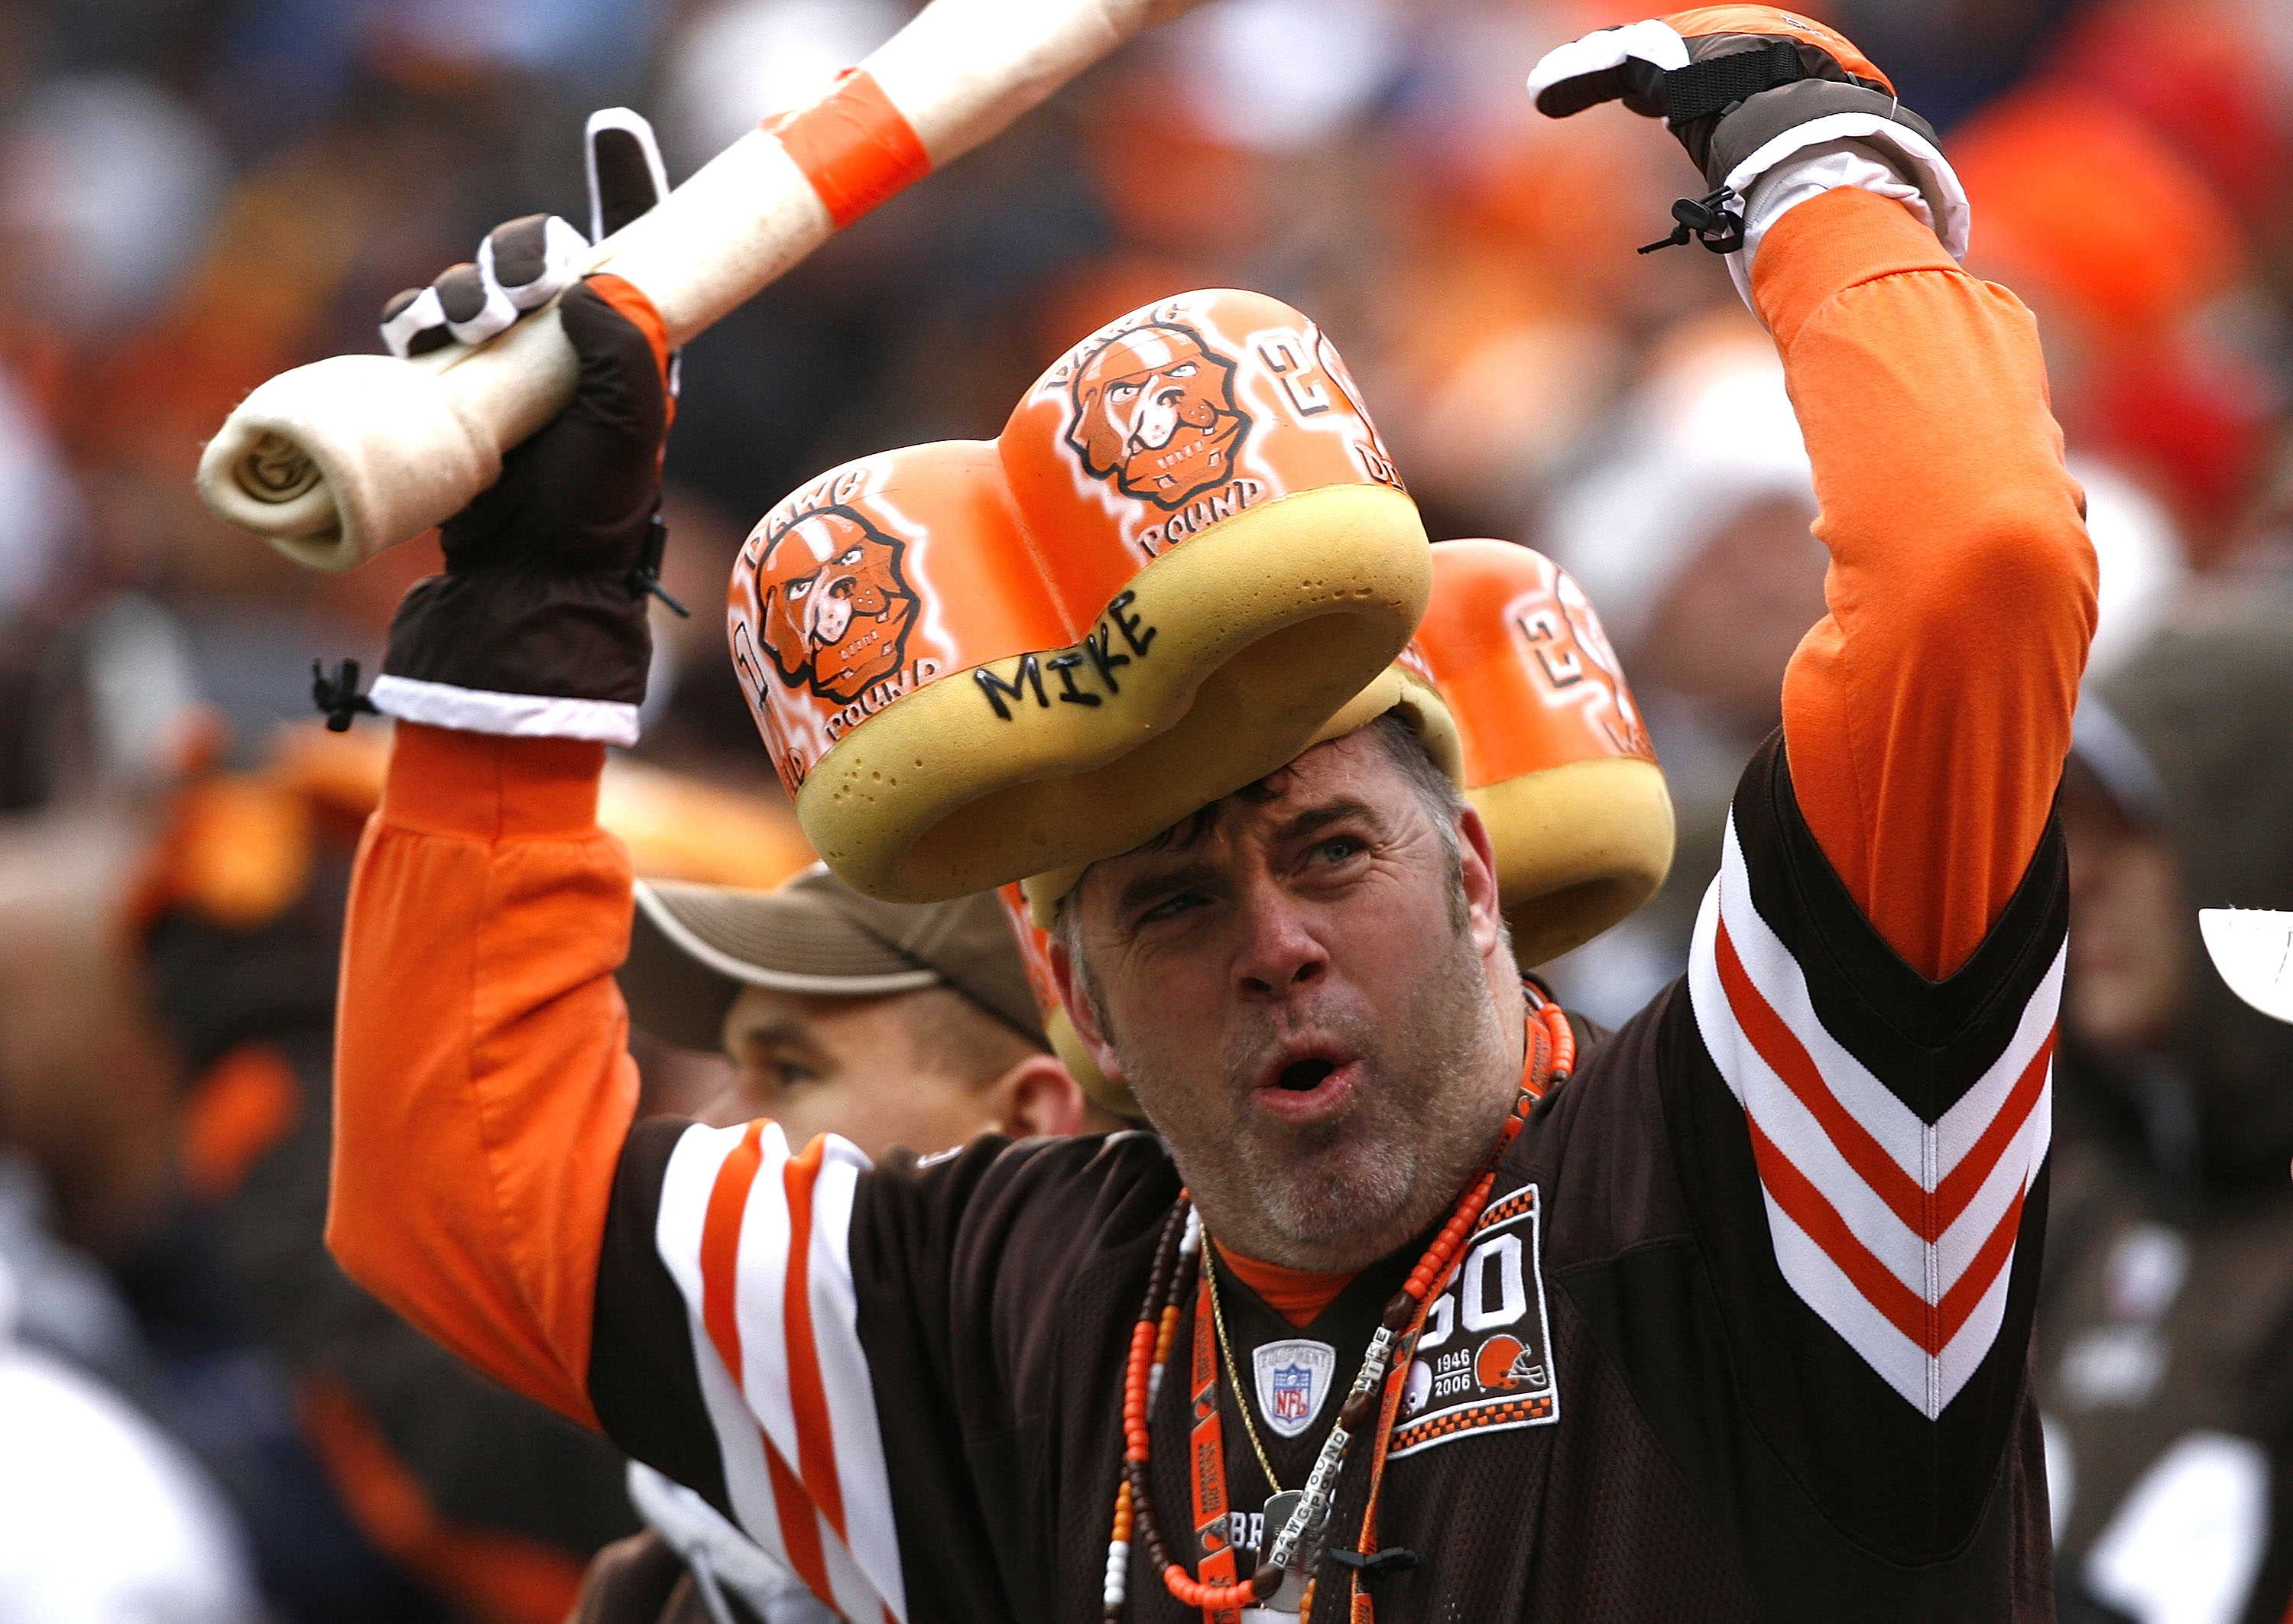 CLEVELAND - DECEMBER 27:  A Cleveland Browns fan cheers against the Oakland Raiders at Cleveland Browns Stadium on December 27, 2009 in Cleveland, Ohio.  (Photo by Matt Sullivan/Getty Images)